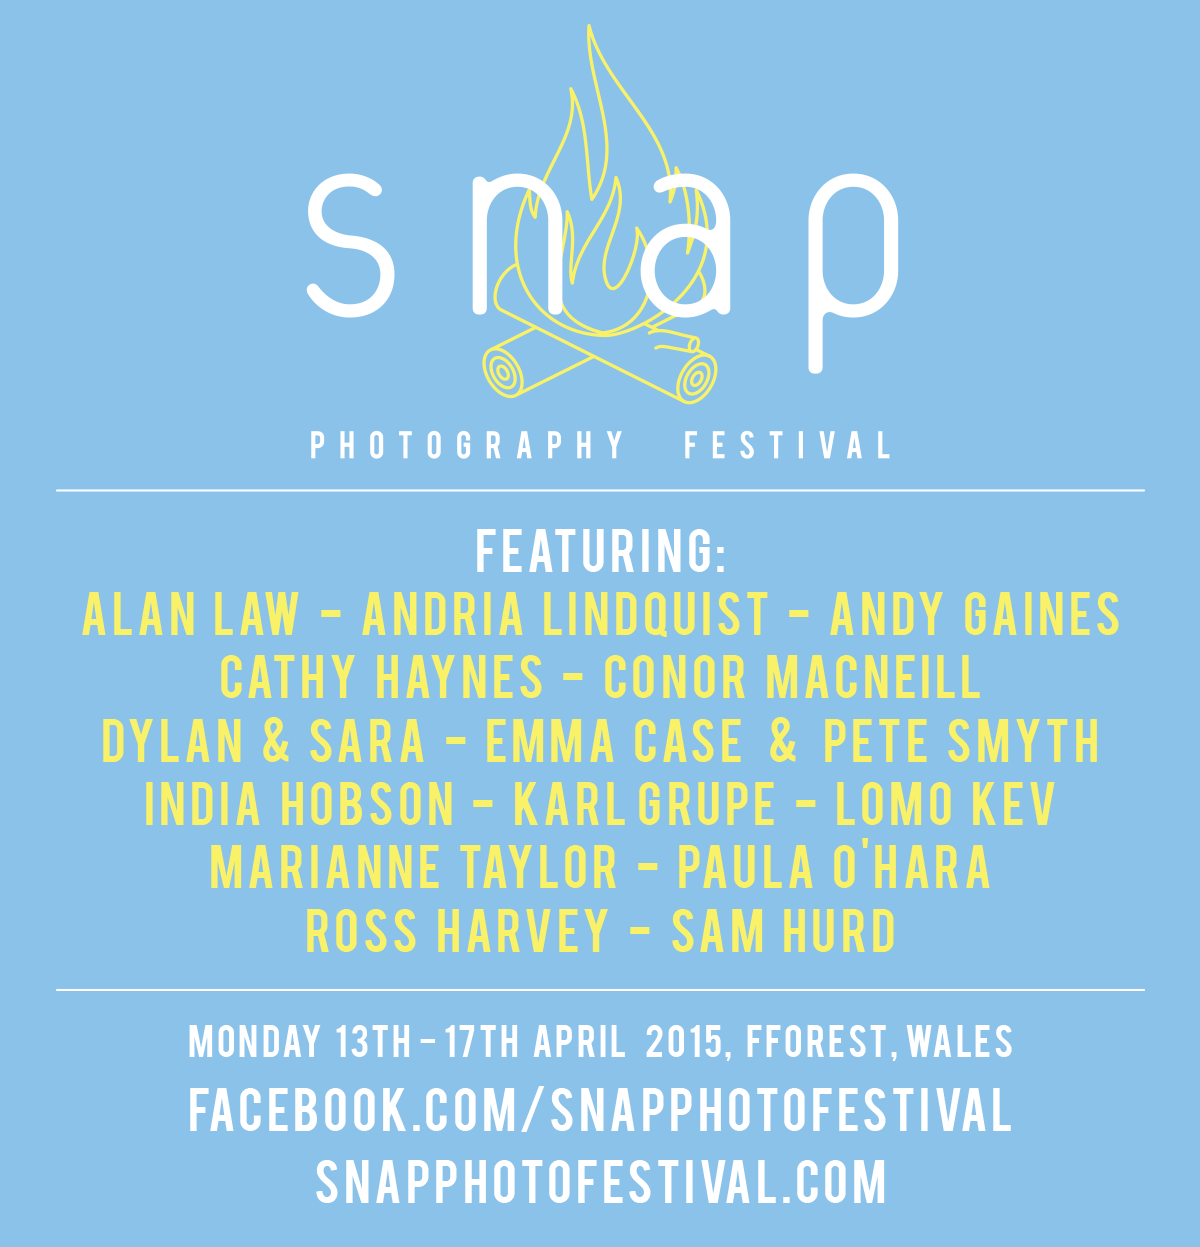 Snap Photography Festival - 13th - 17th April 2015